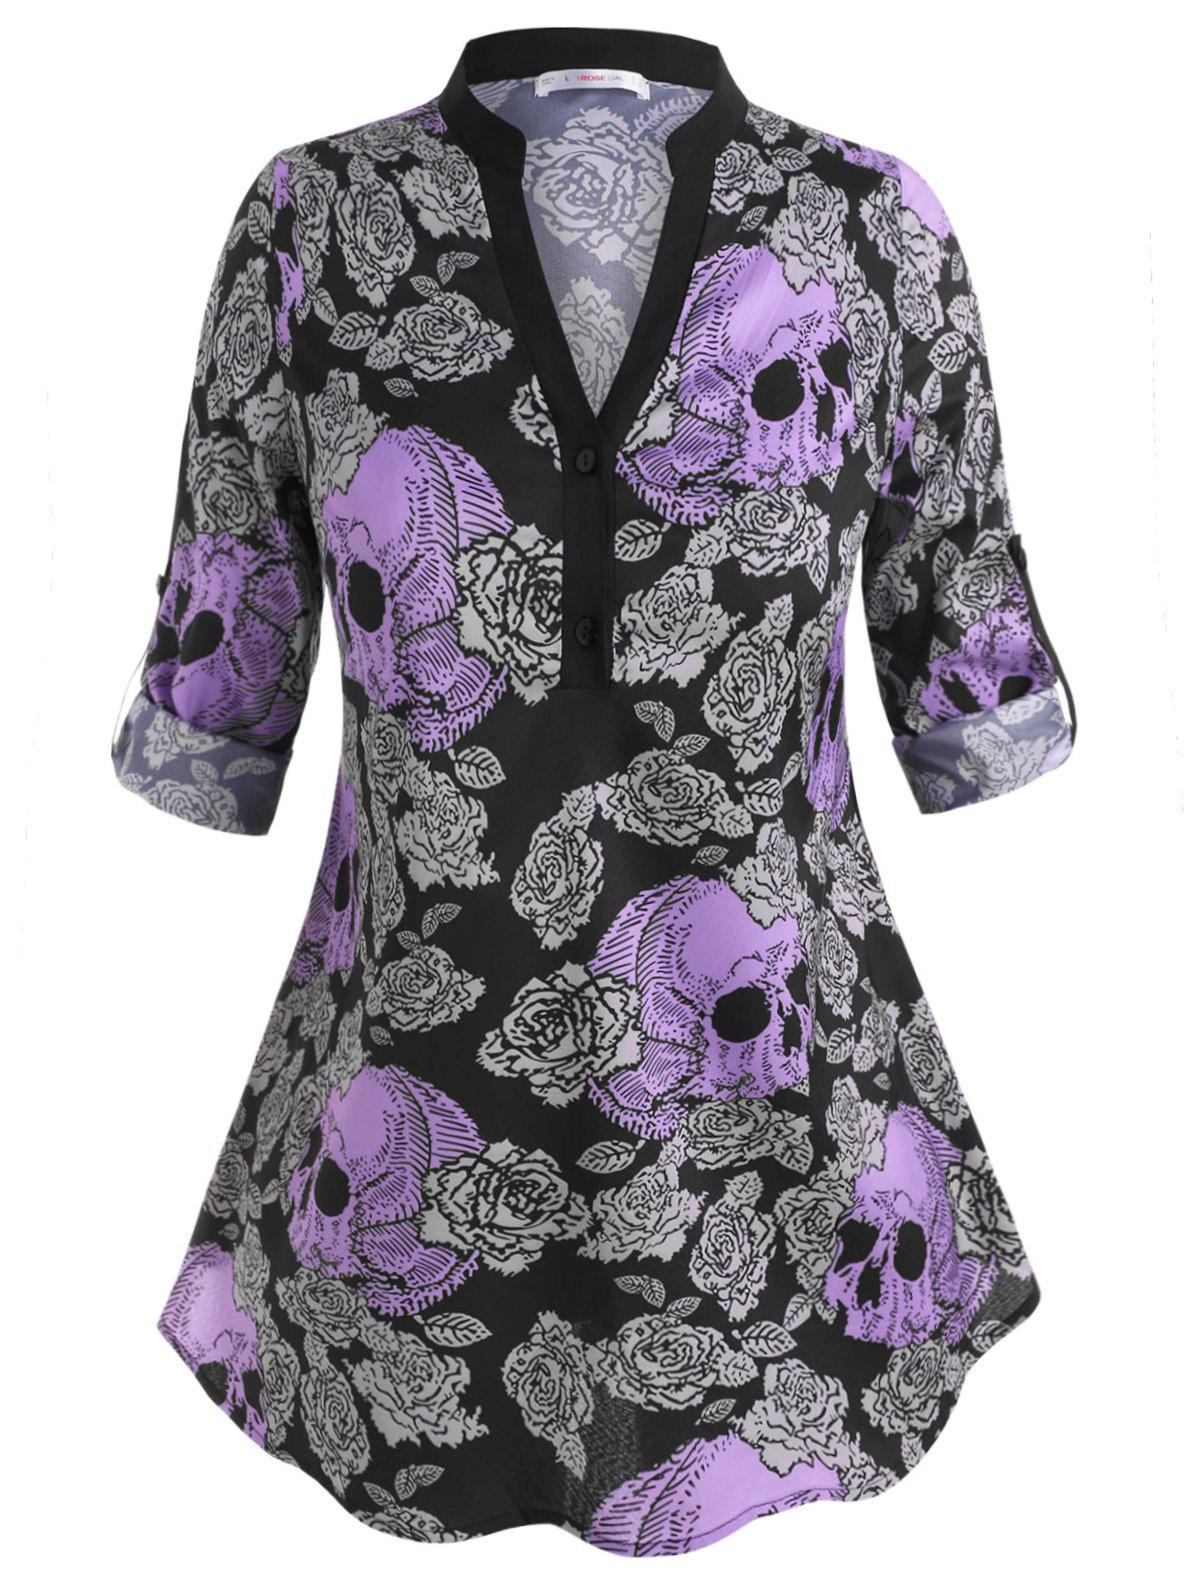 Skull Floral Two Buttoned Tab Sleeve Halloween Plus Size Blouse - PURPLE 5X